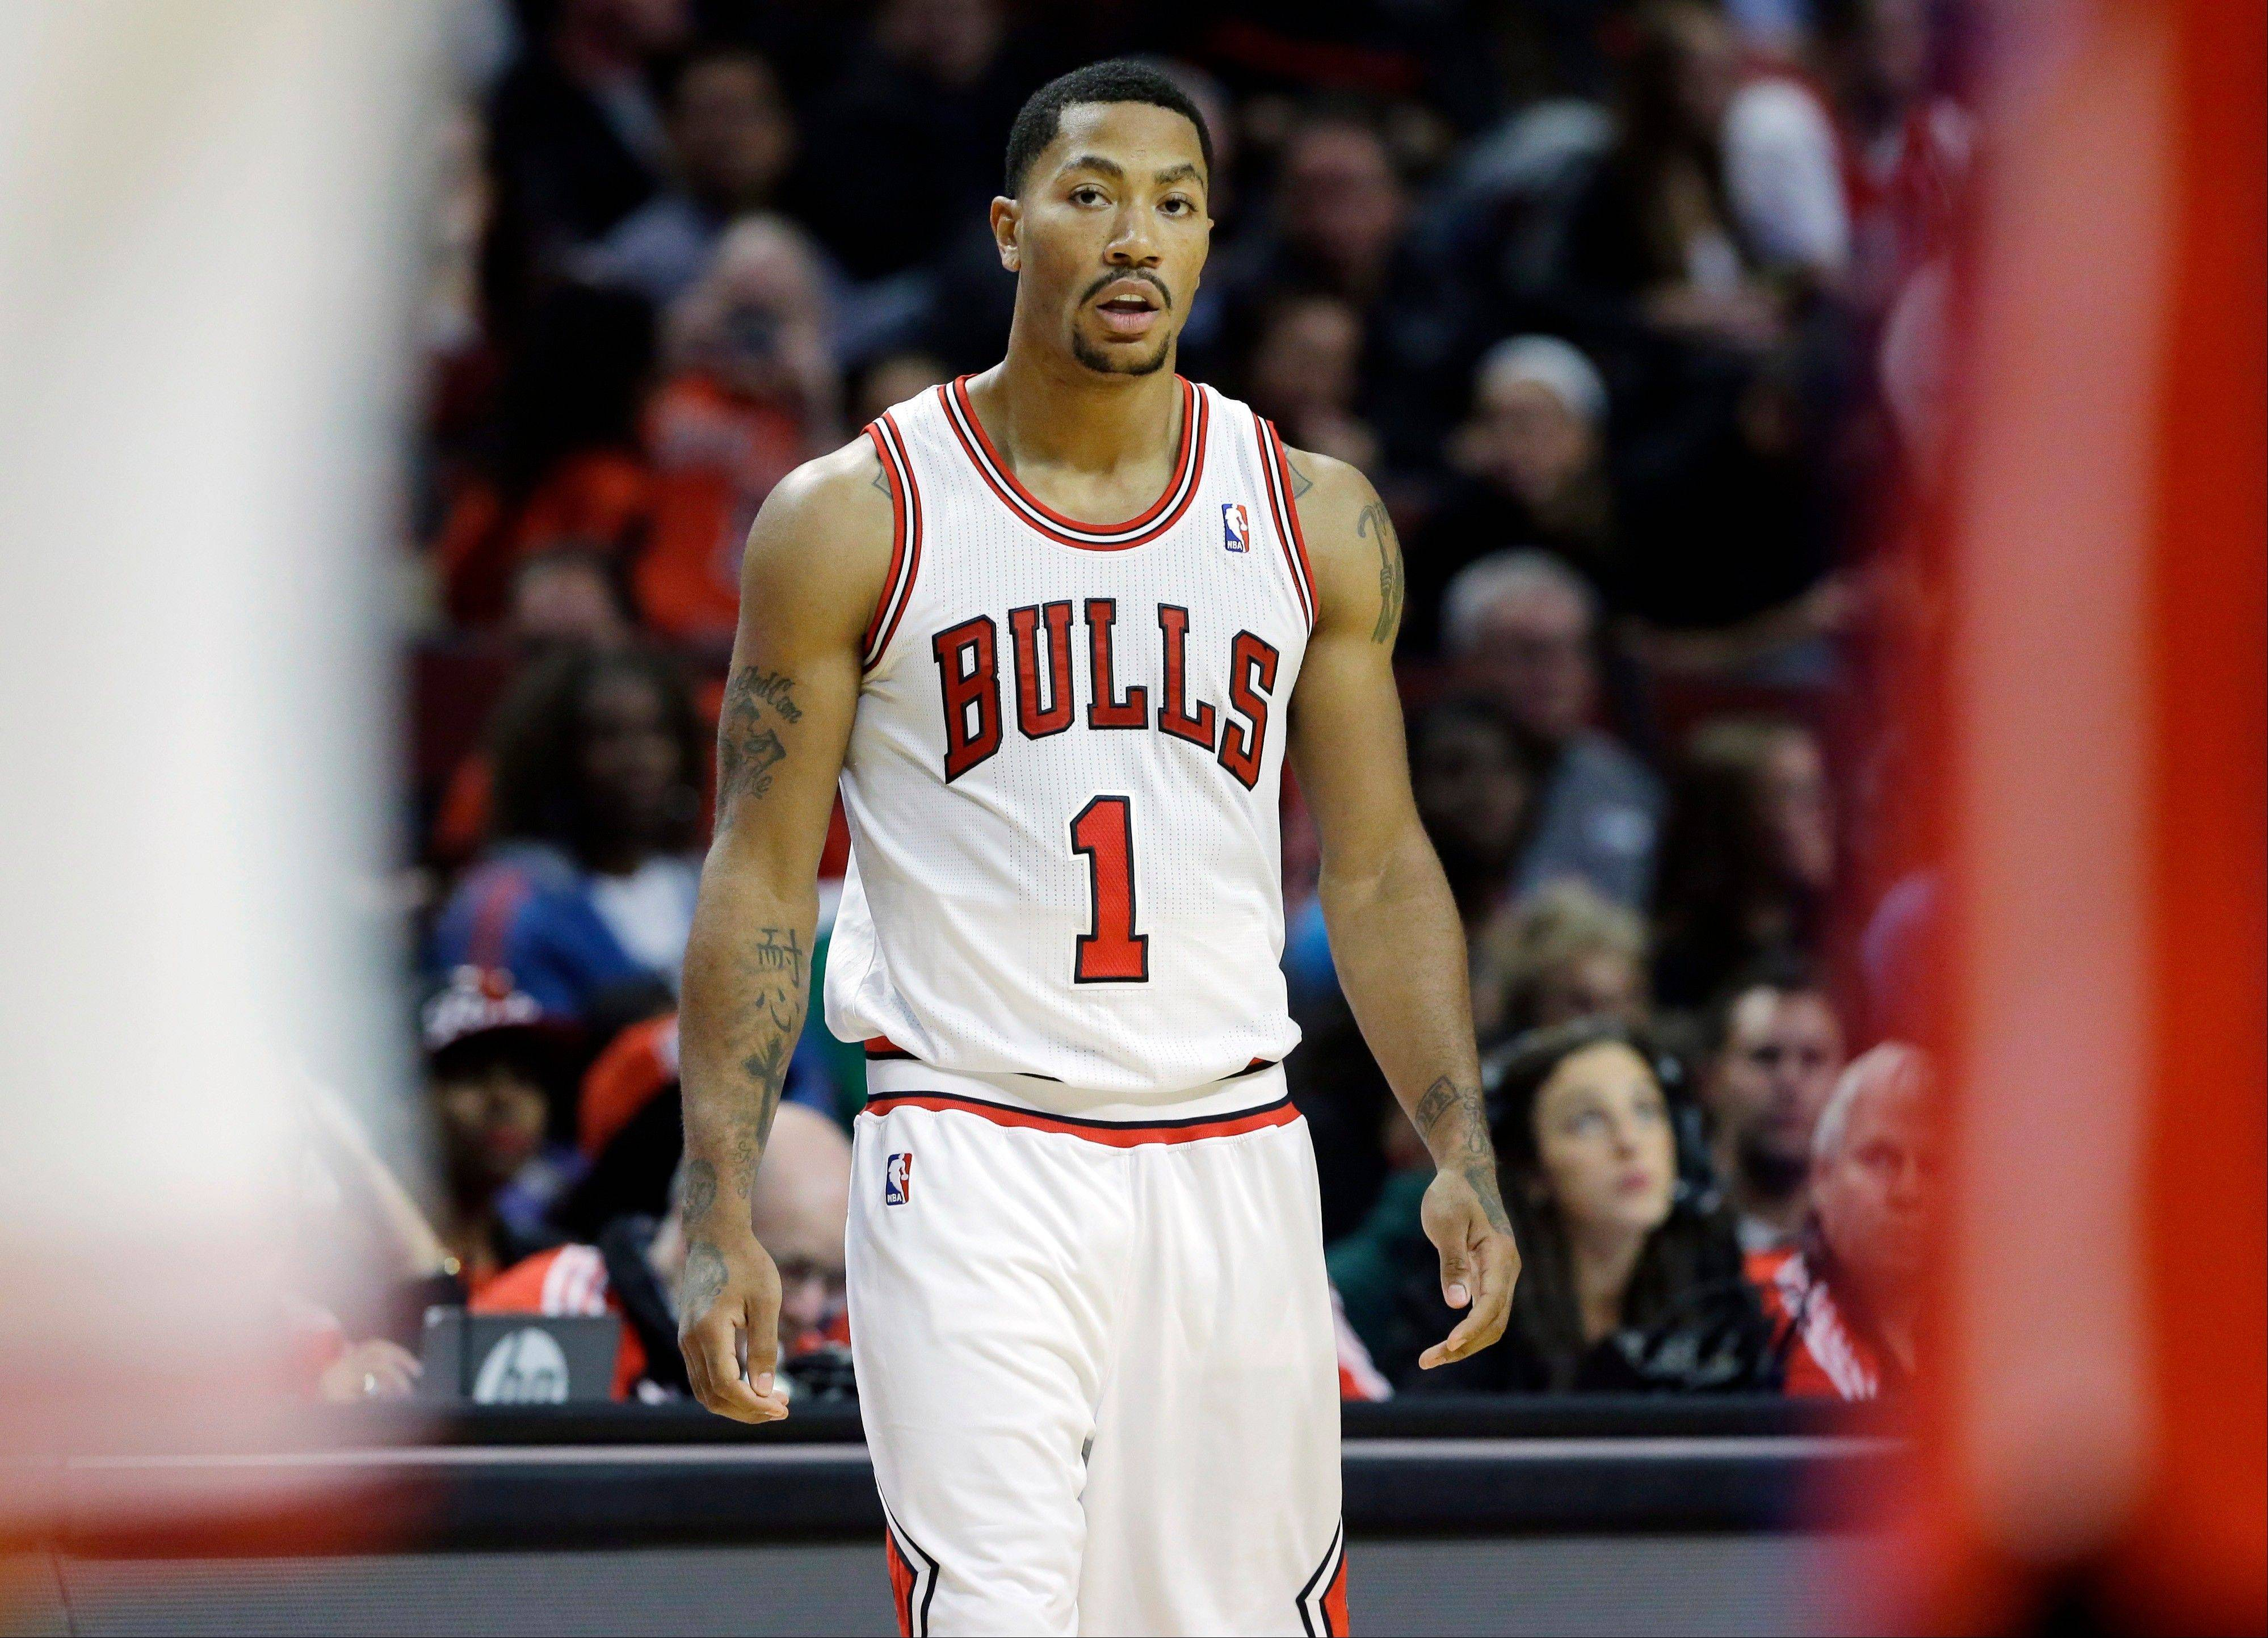 Bulls guard Derrick Rose looks to his teammates during the first half of Wednesday night's preseason game against the Detroit Pistons. It was Rose's first game on the UC floor since injury his knee 18 months ago.